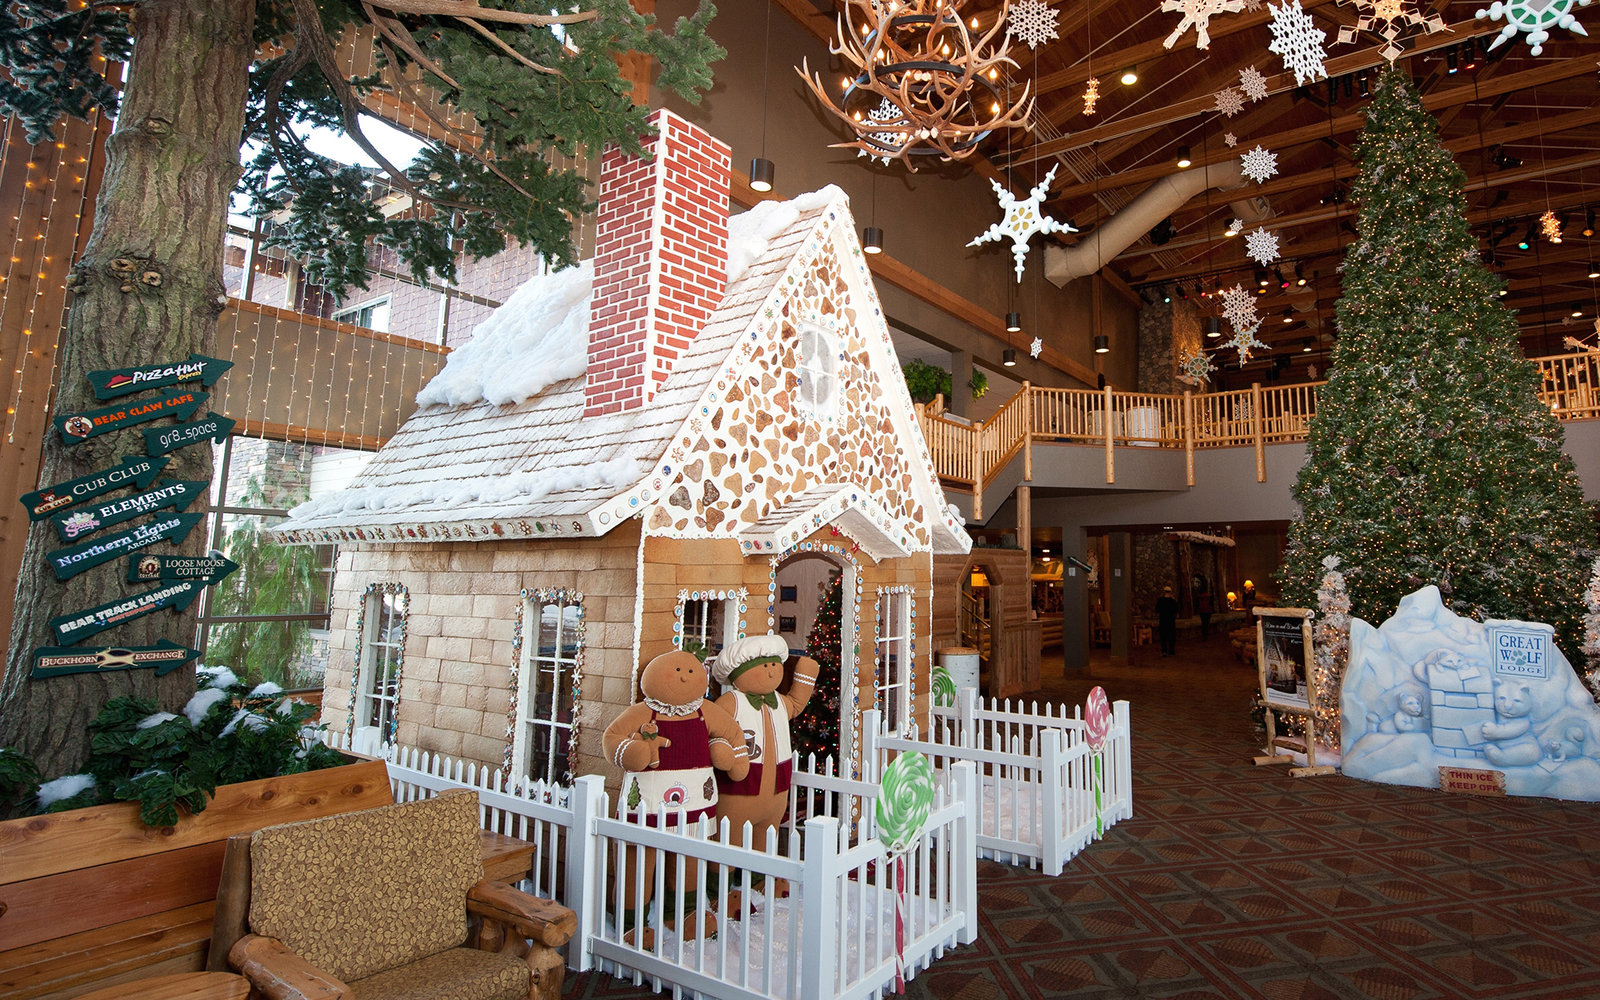 The Snowland Gingerbread House is the centerpiece as the Great Wolf Lodge transforms into a winter wonderland on Wednesday, Nov. 30, 2011 in Grand Mound, Wash. The Snowland Gingerbread House will be available for dining at each Great Wolf Lodge location b